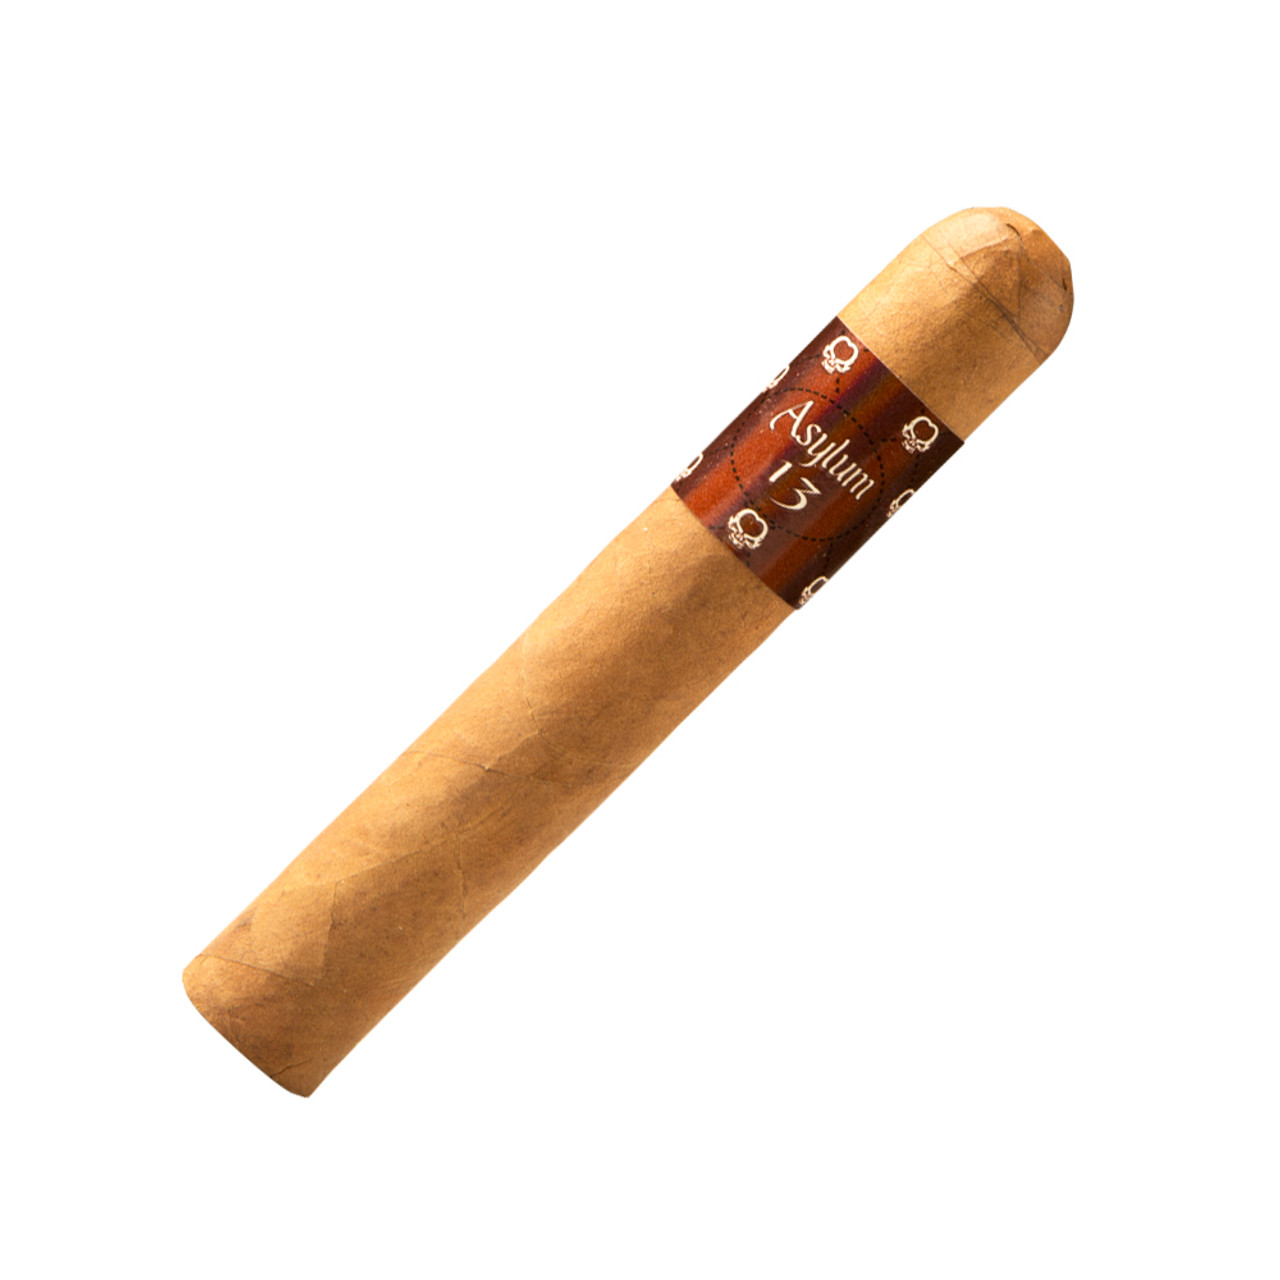 Asylum 13 Corojo Cigars - 5 x 50 (Box of 50)